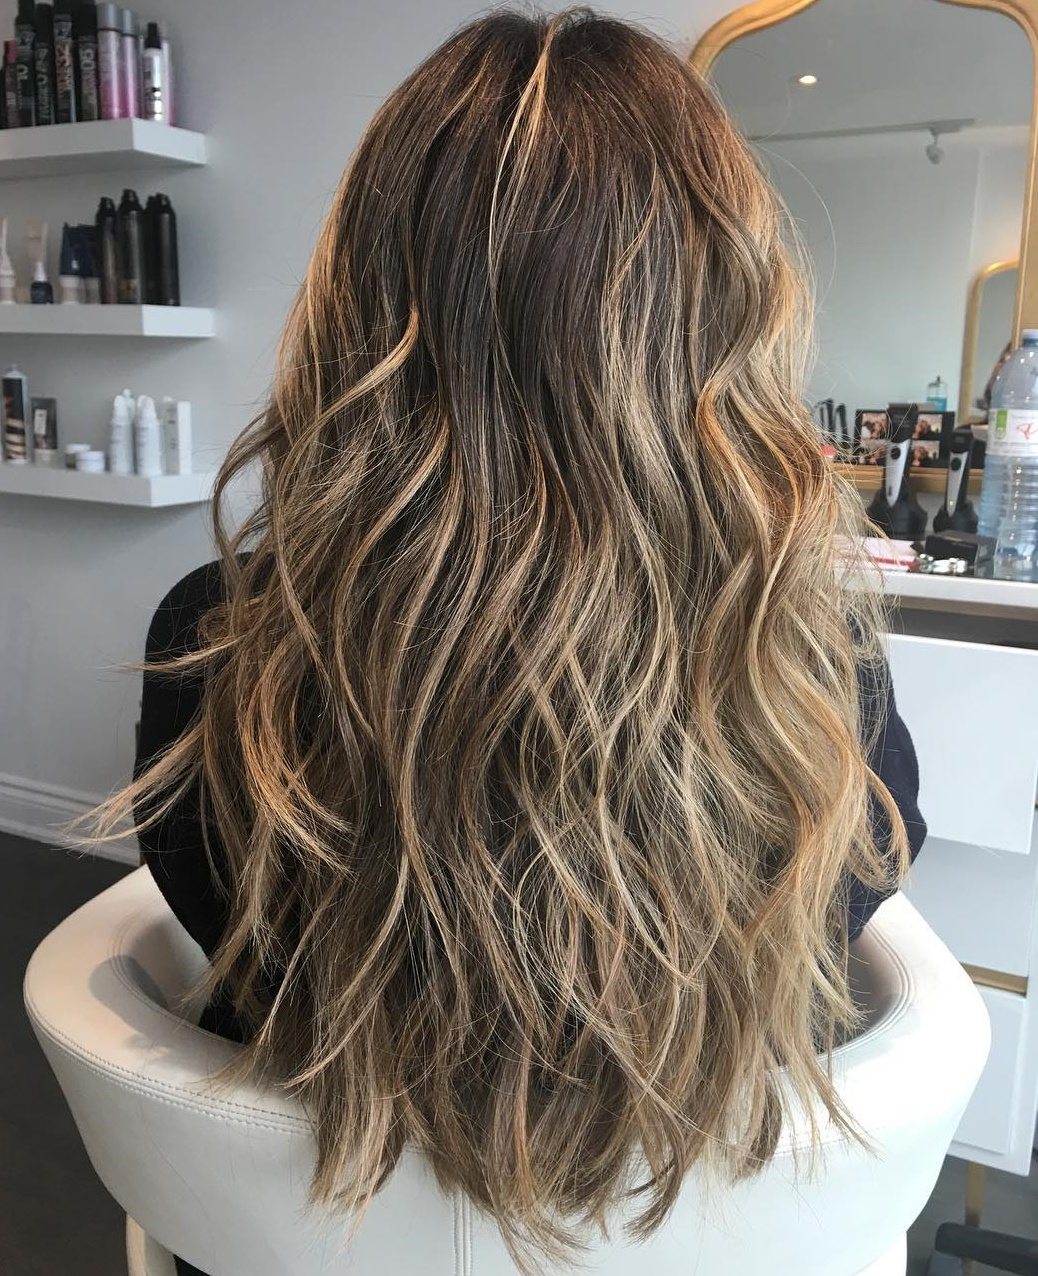 Low-Maintenance Beach Waves Long Hair